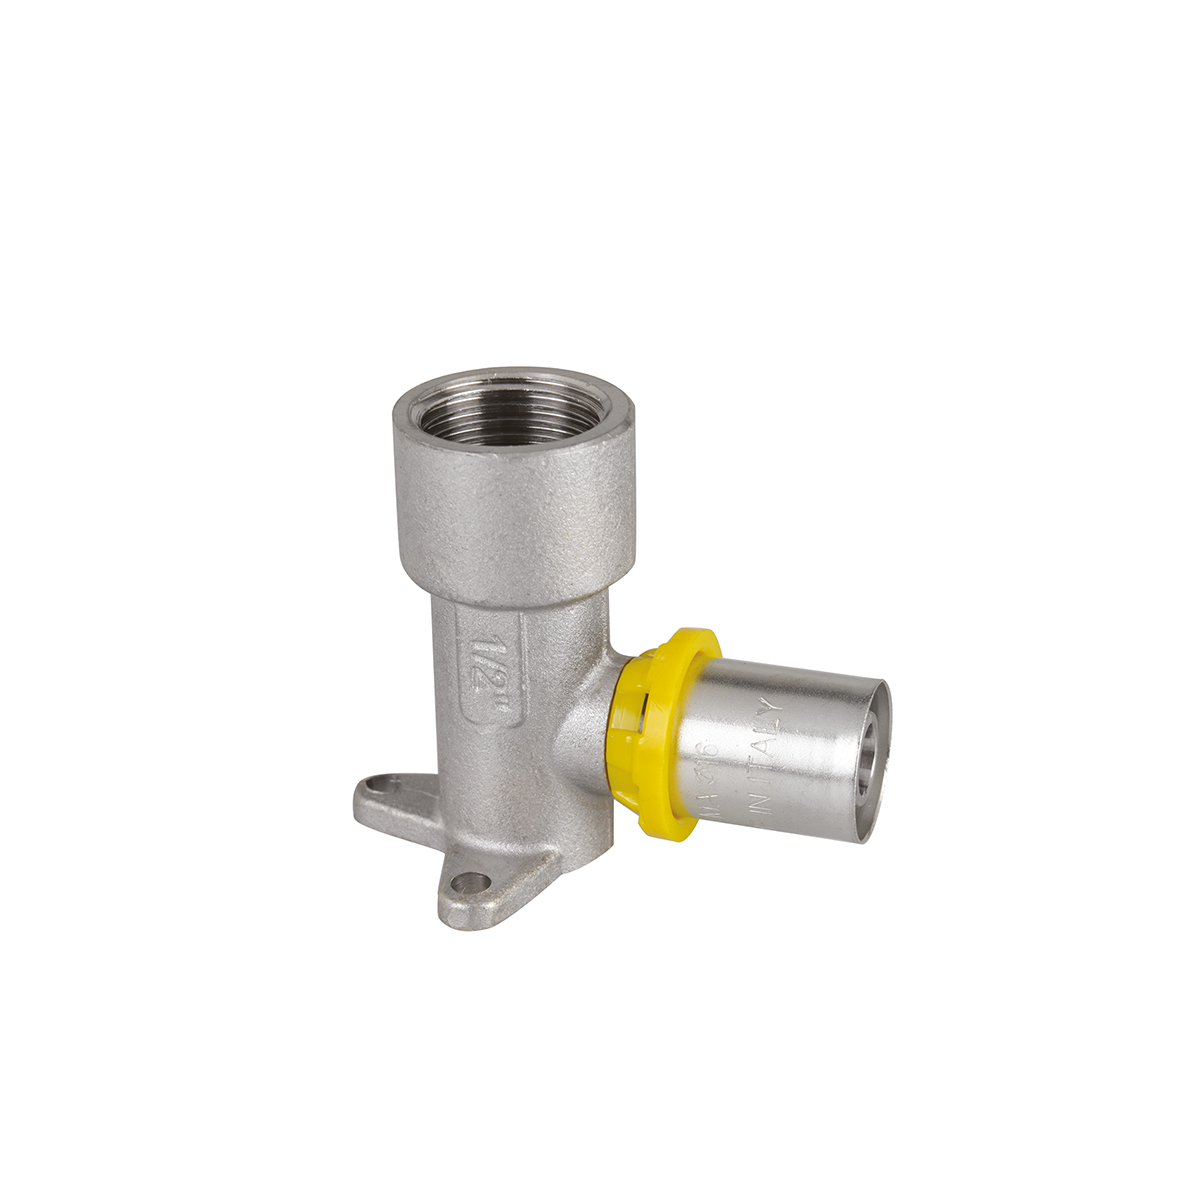 SEMPIGAS® press-fitting for wall plate fixing